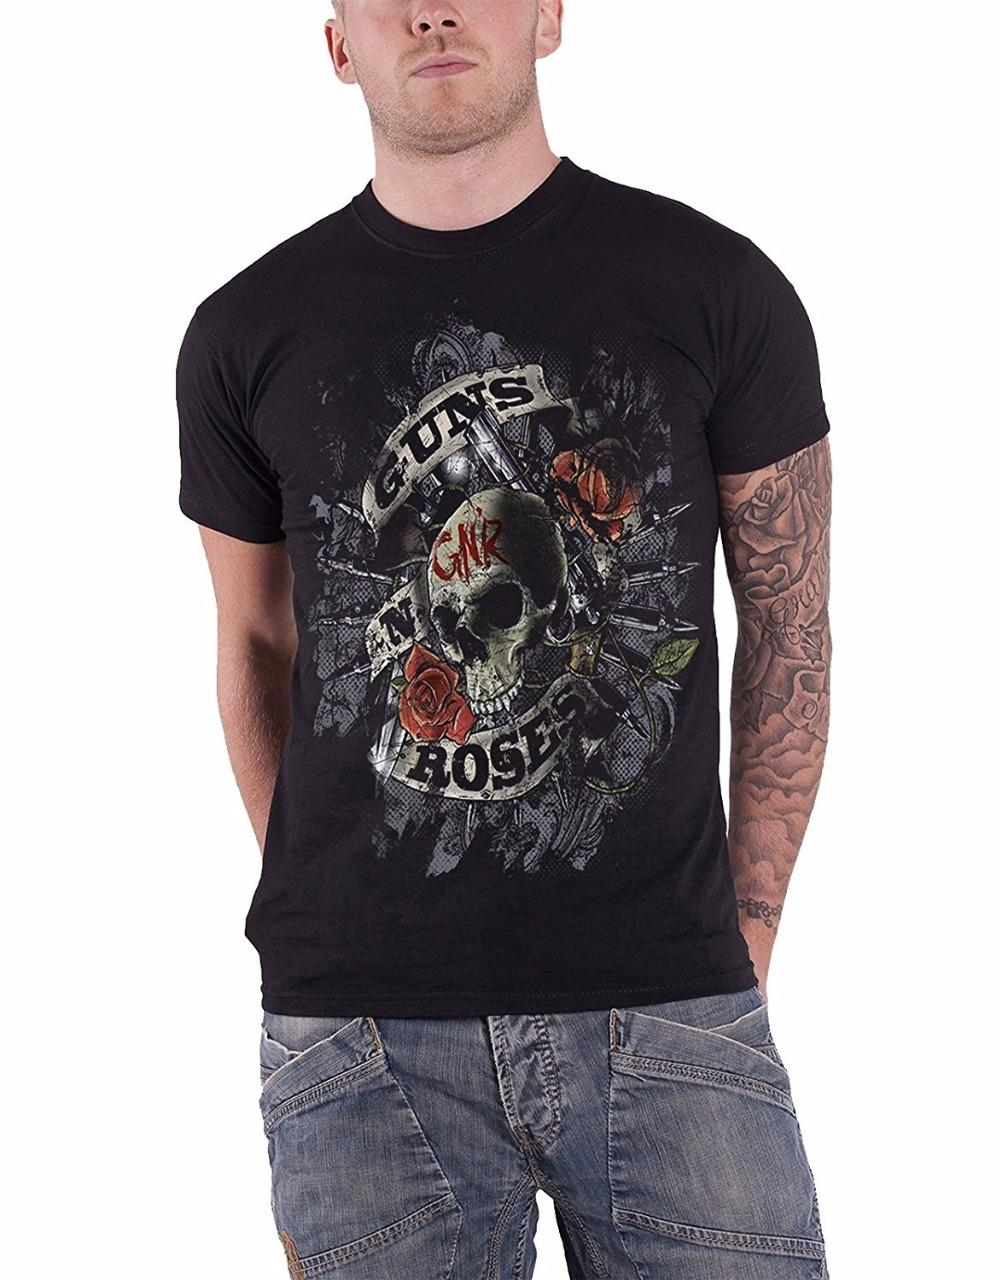 42fe1f40a Design Your Own Shirt Online Men's Guns N Roses Mens T Shirt Firepower  Distressed Black Cotton O - Neck Cotton Short Sleeve Shirts